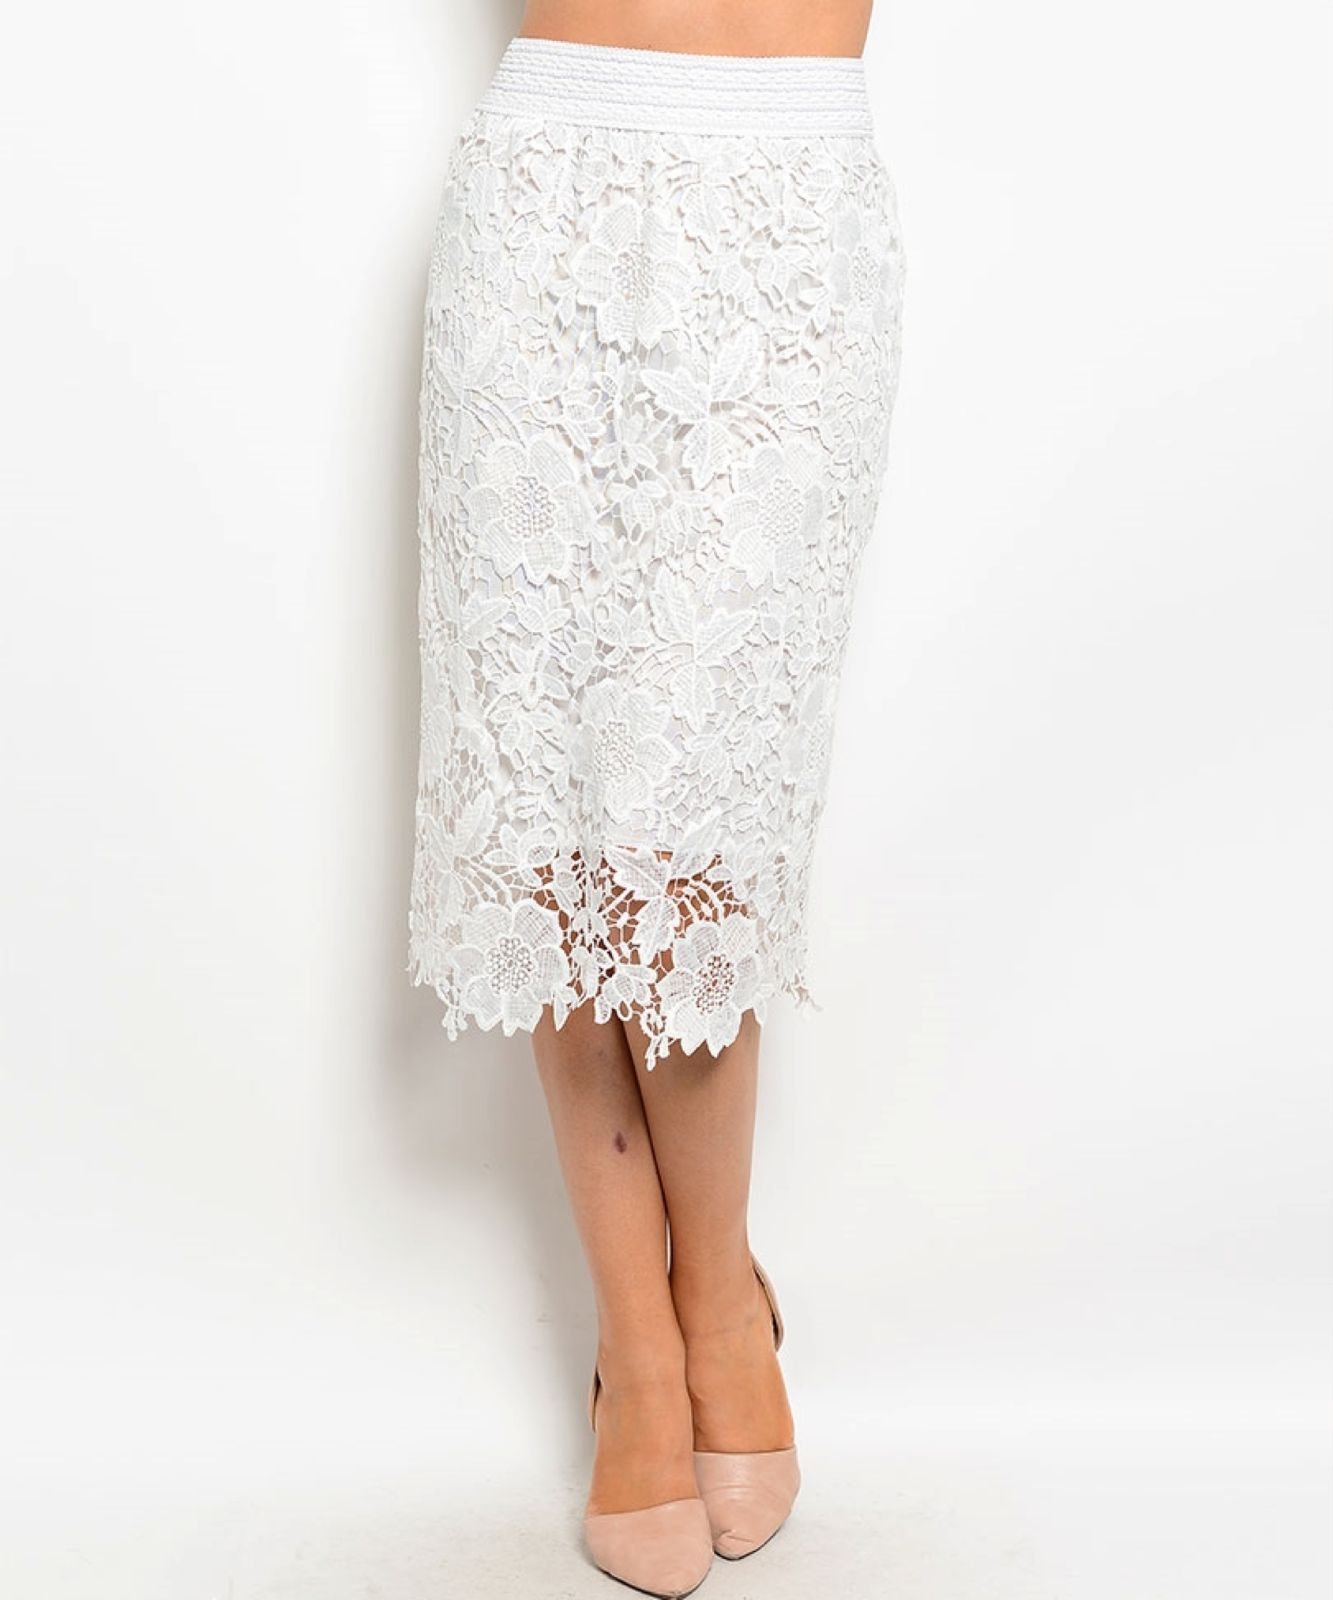 Image 2 of Chic Crochet Lace Lined Jr Skirt, Cocktail Club Party, Black, Ivory or White - B